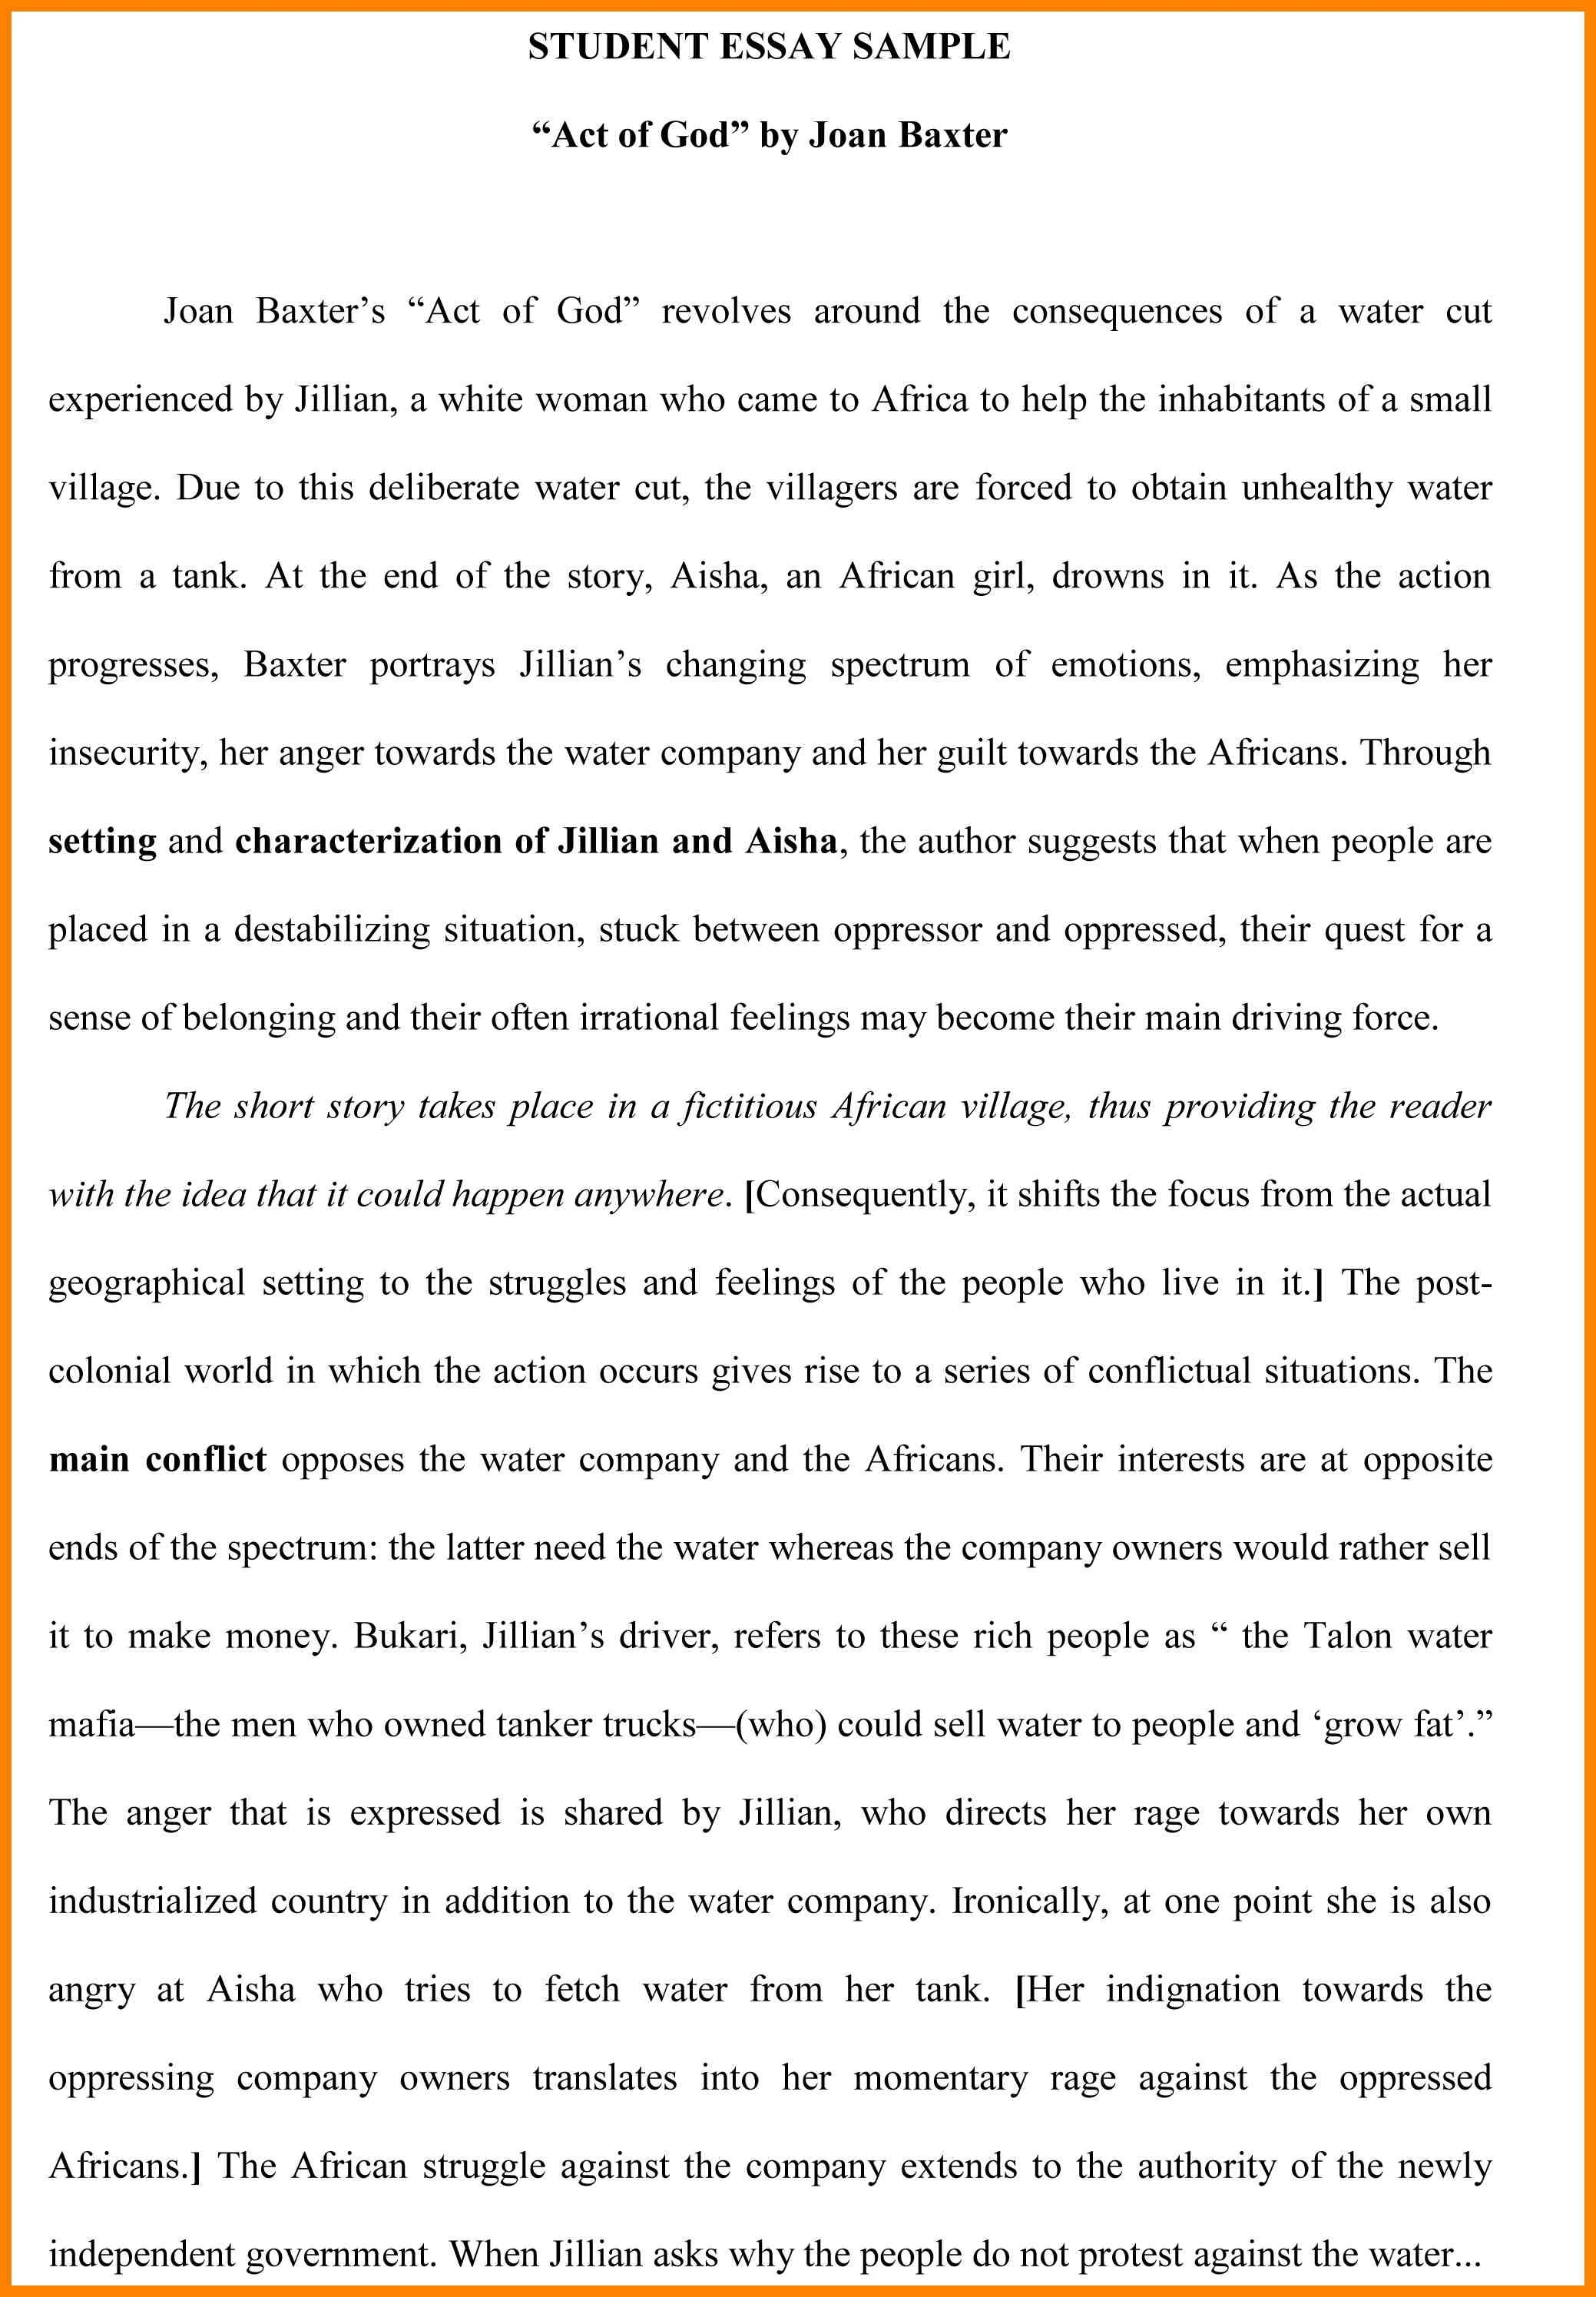 Student Essay Examples